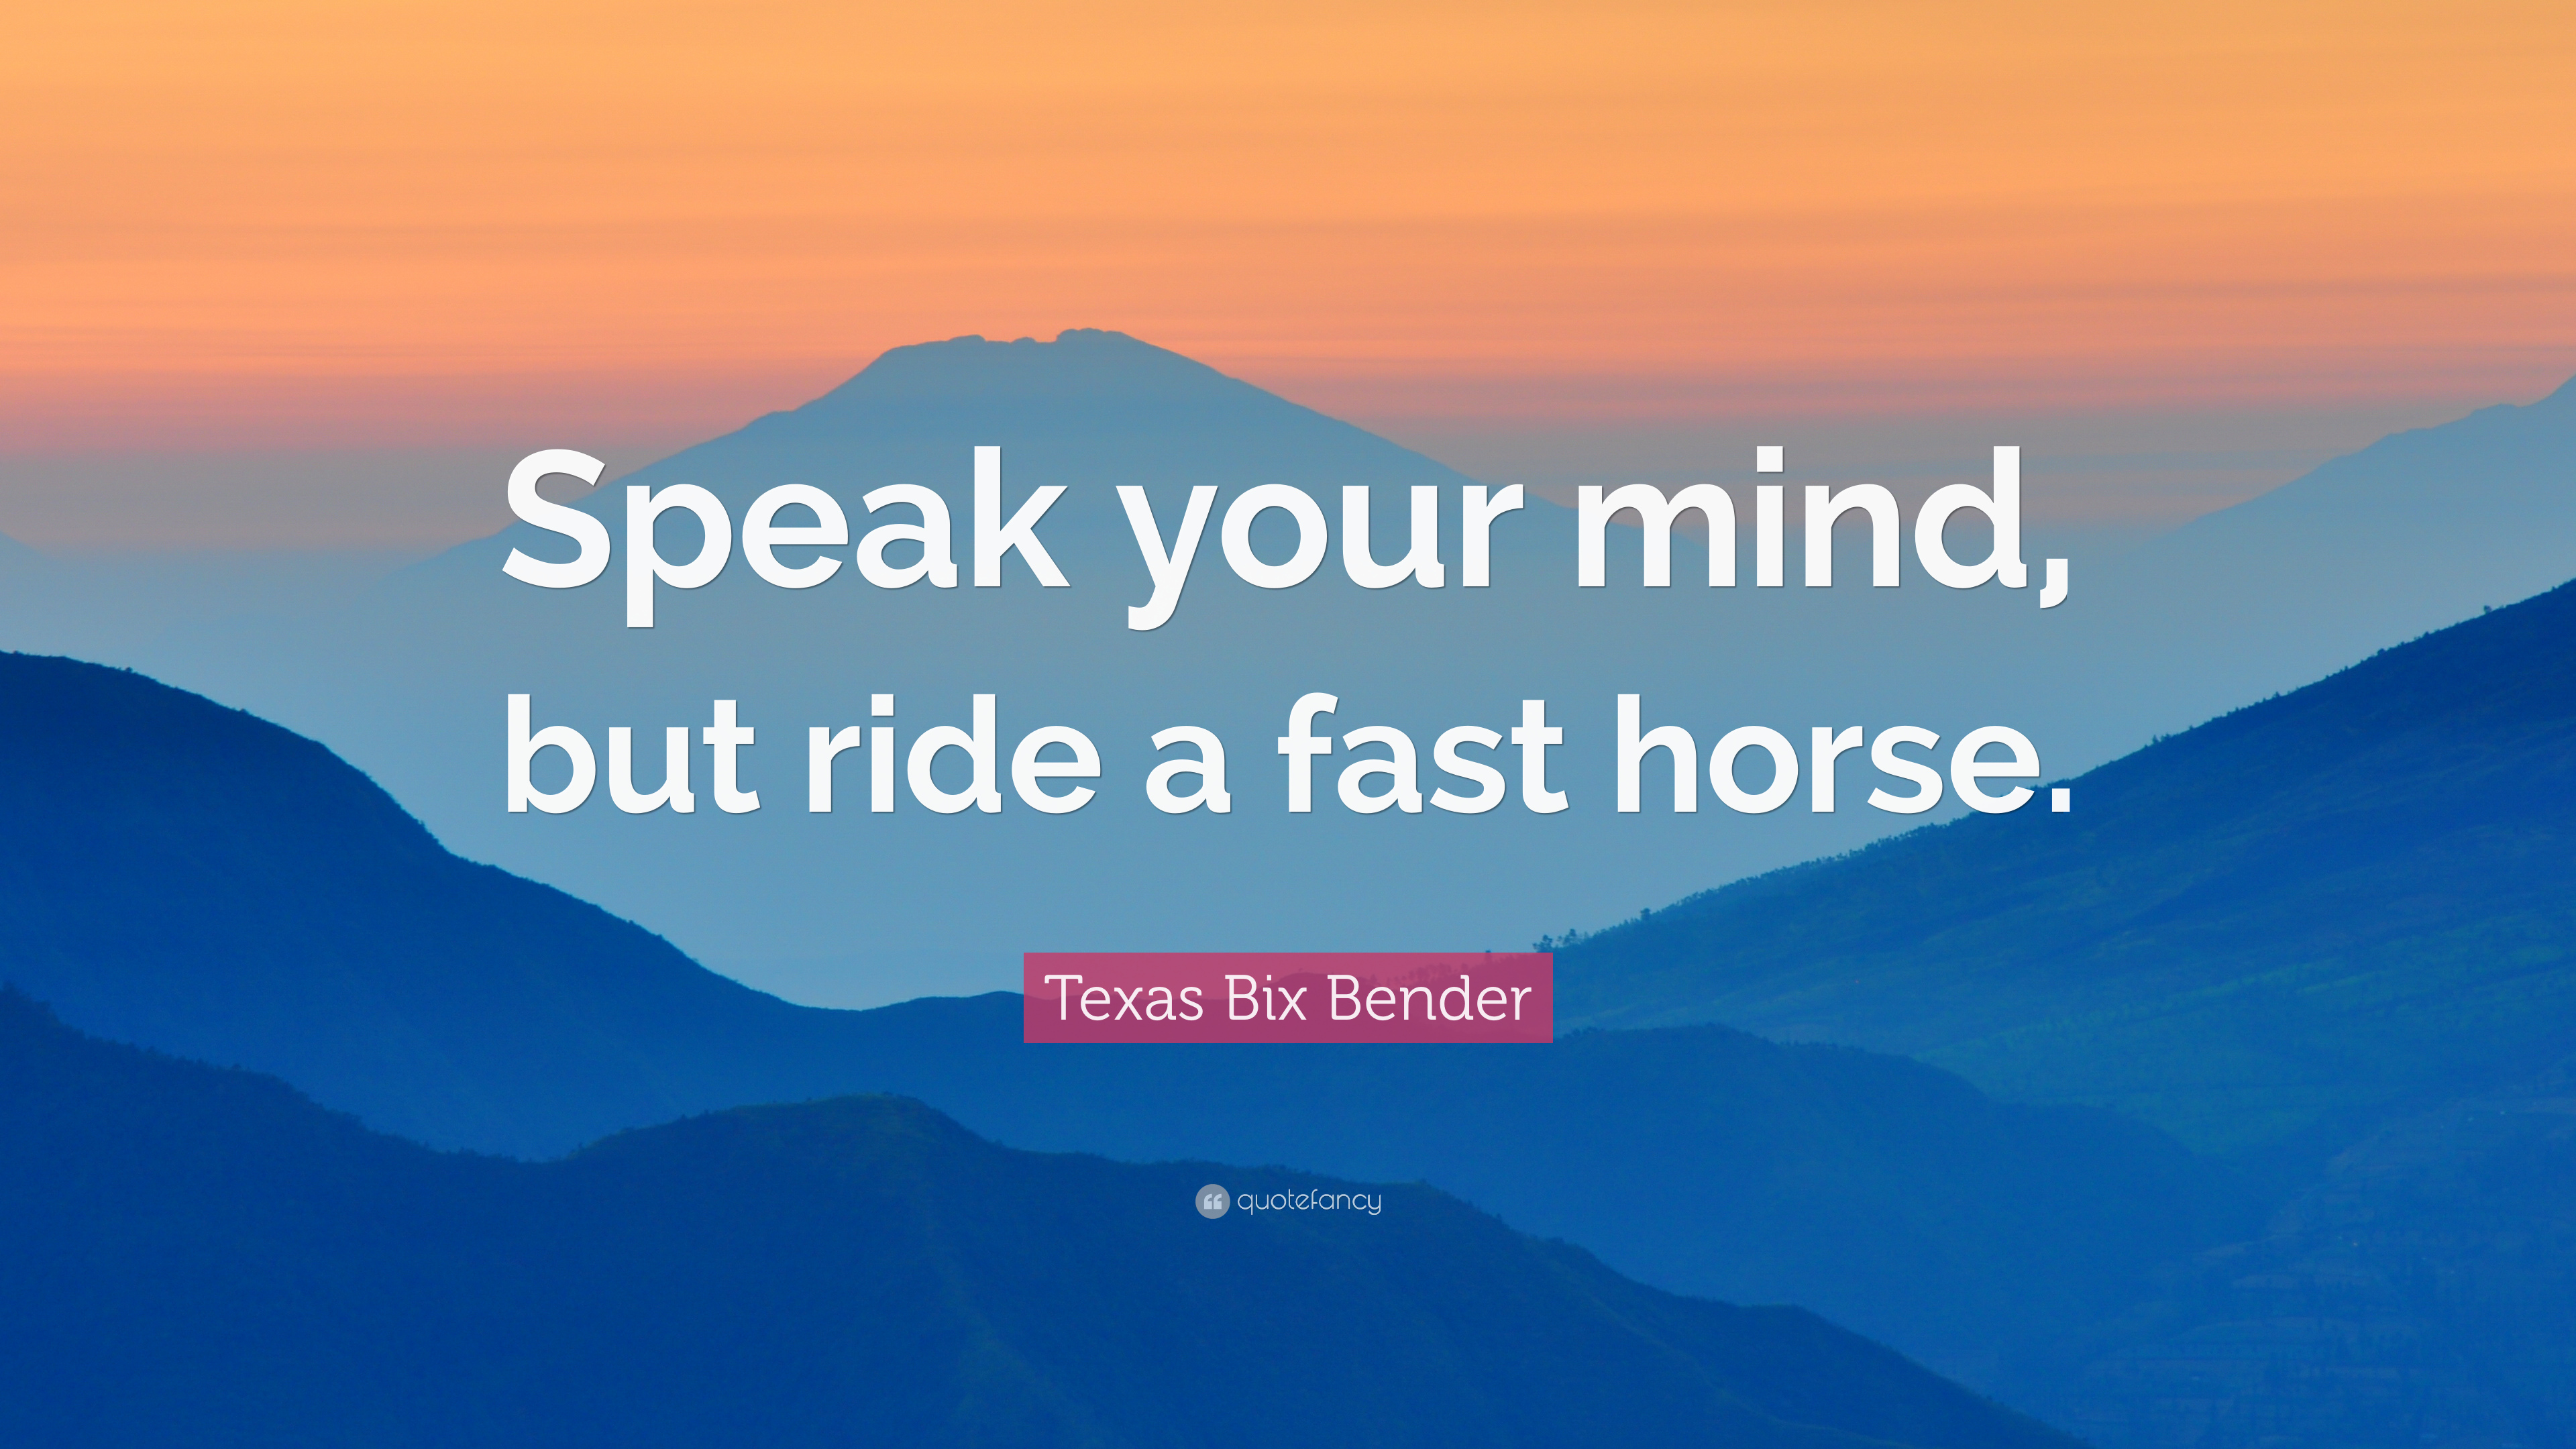 Texas Bix Bender Quotes 6 Wallpapers Quotefancy